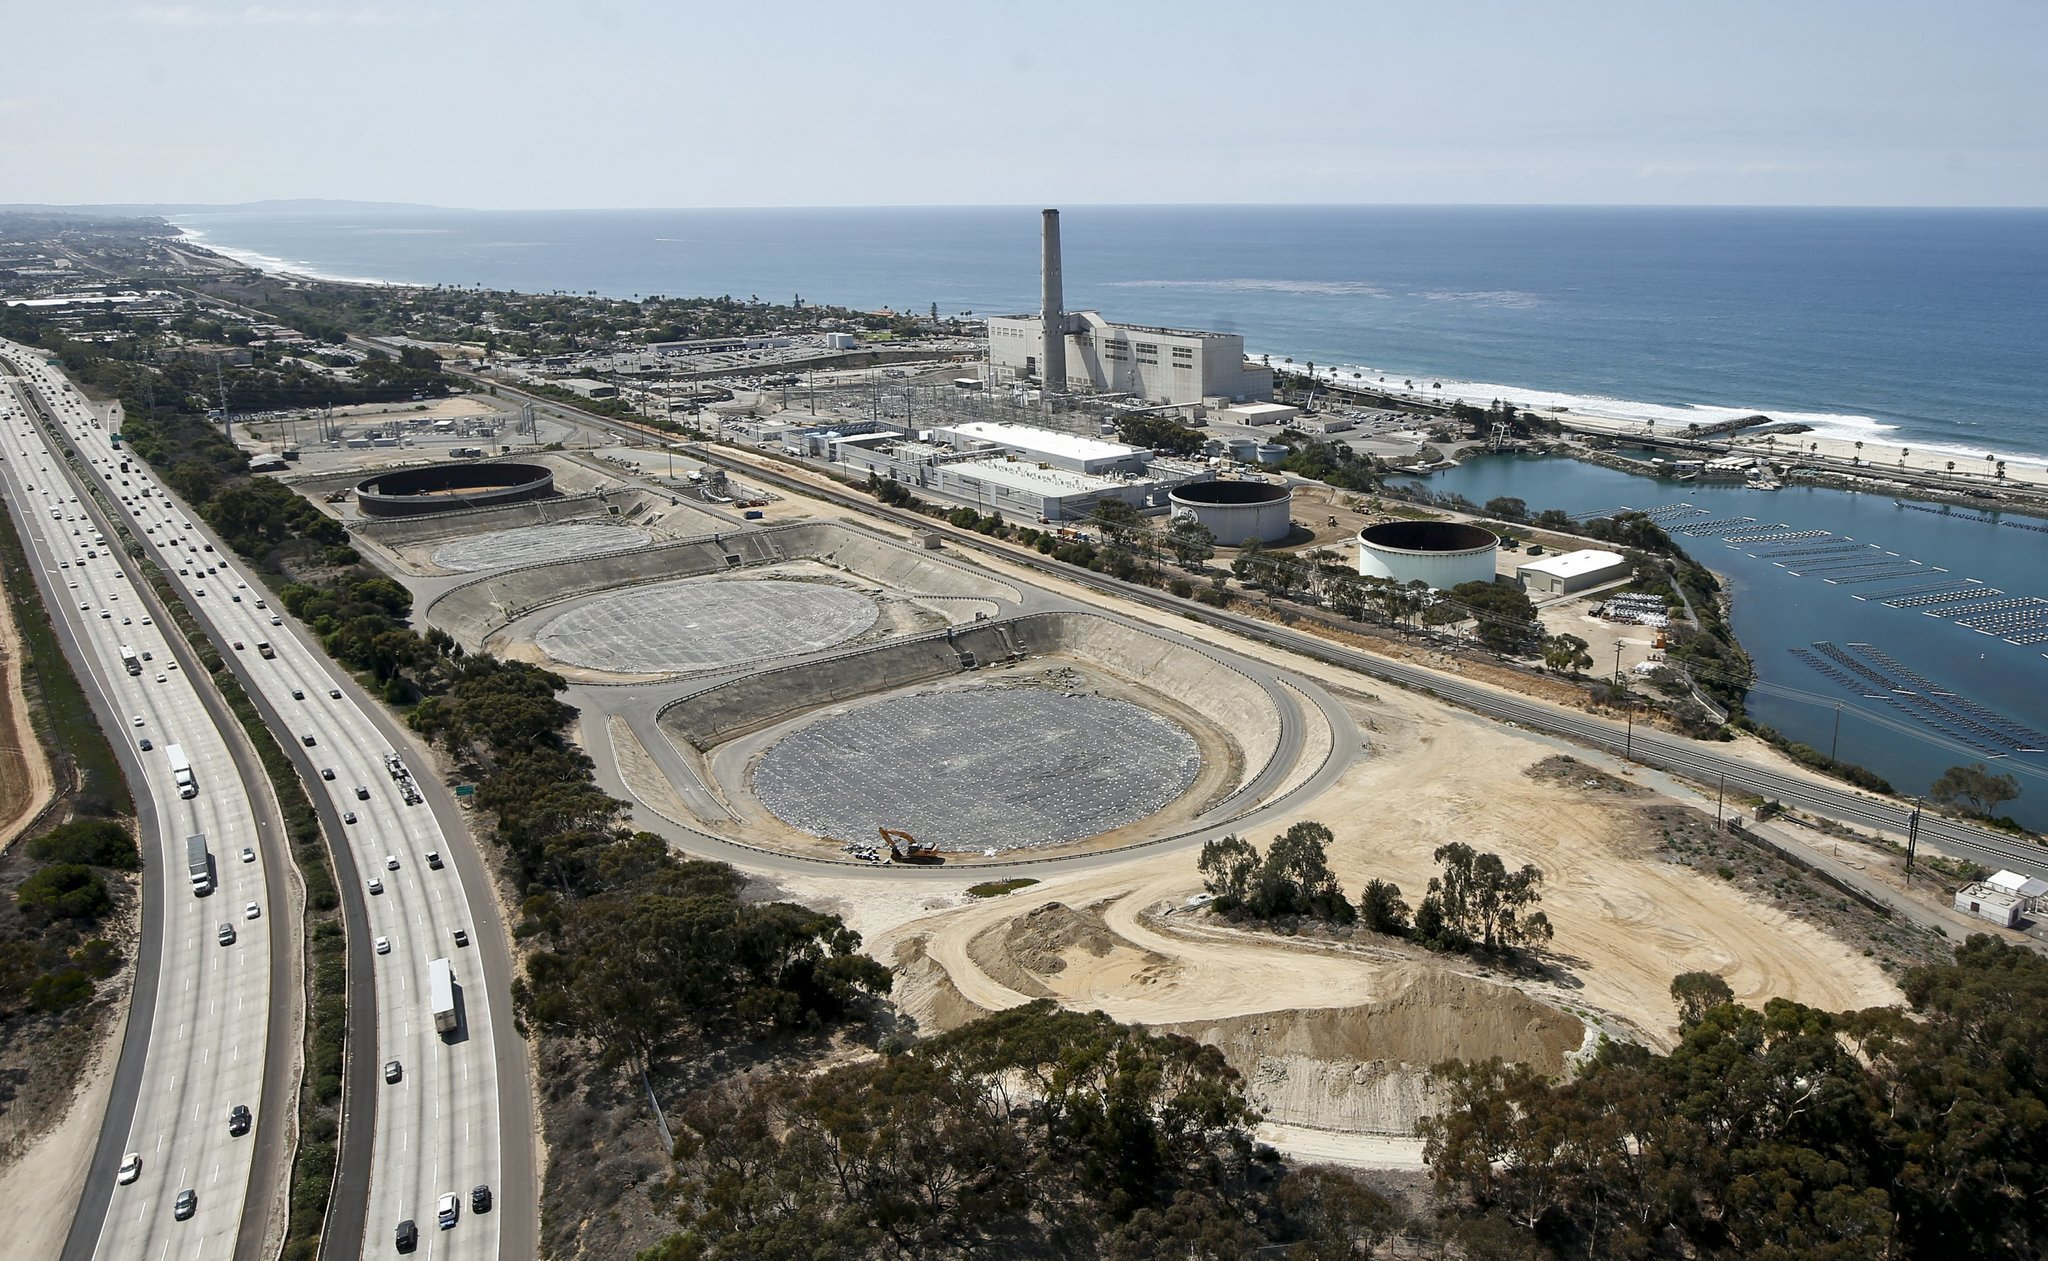 New problem Too much water The San Diego Union Tribune